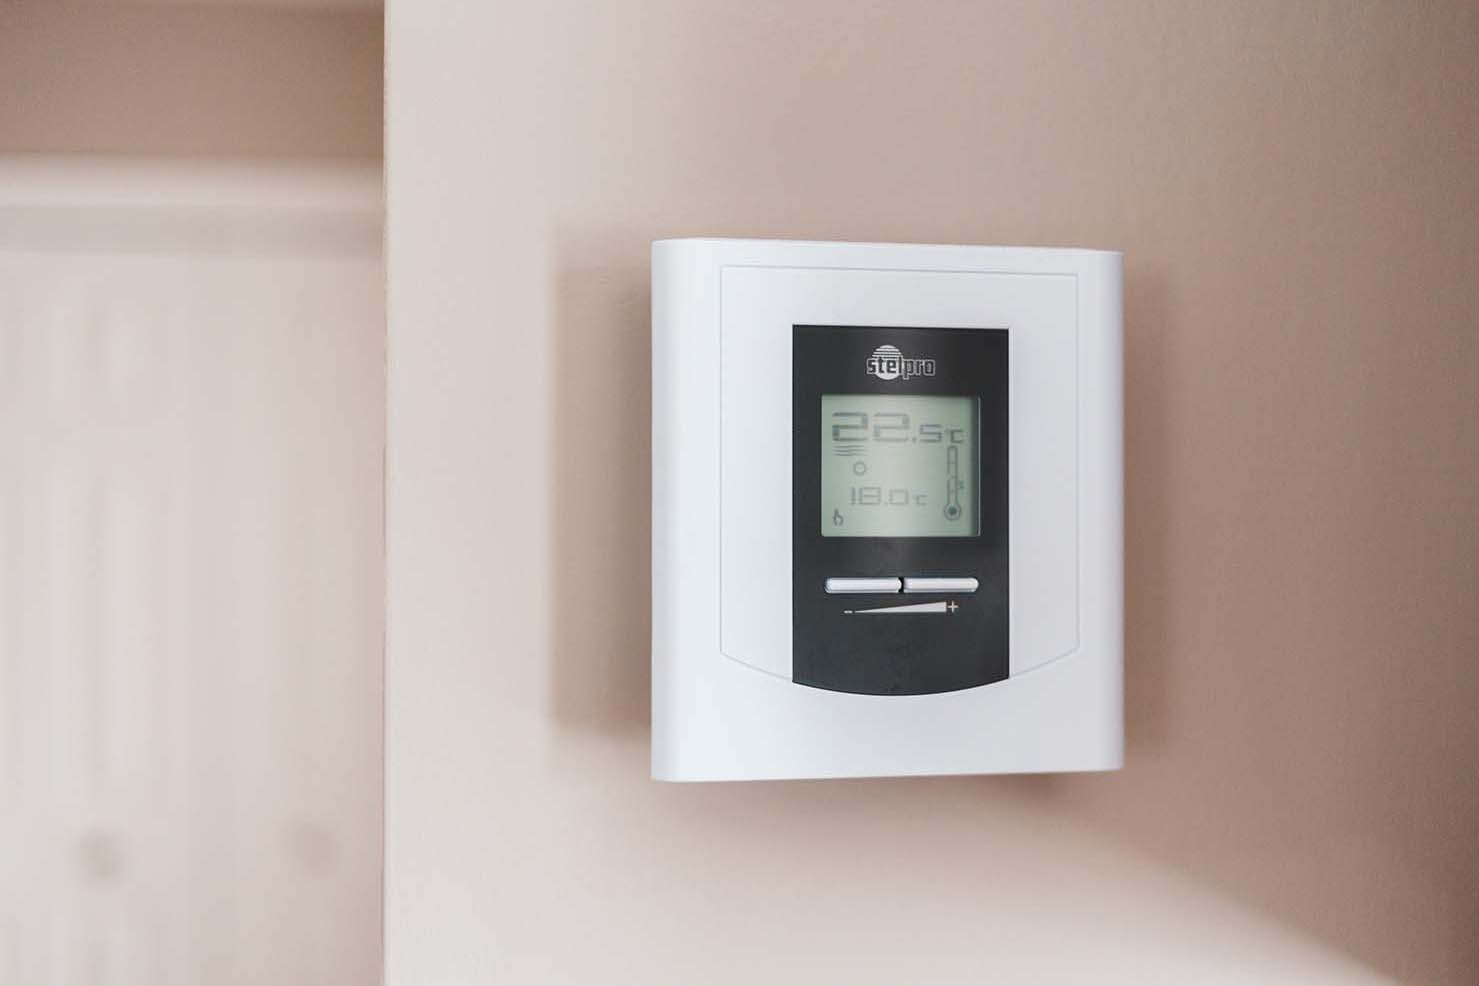 Expert Tips to Fix Common Boiler Problems